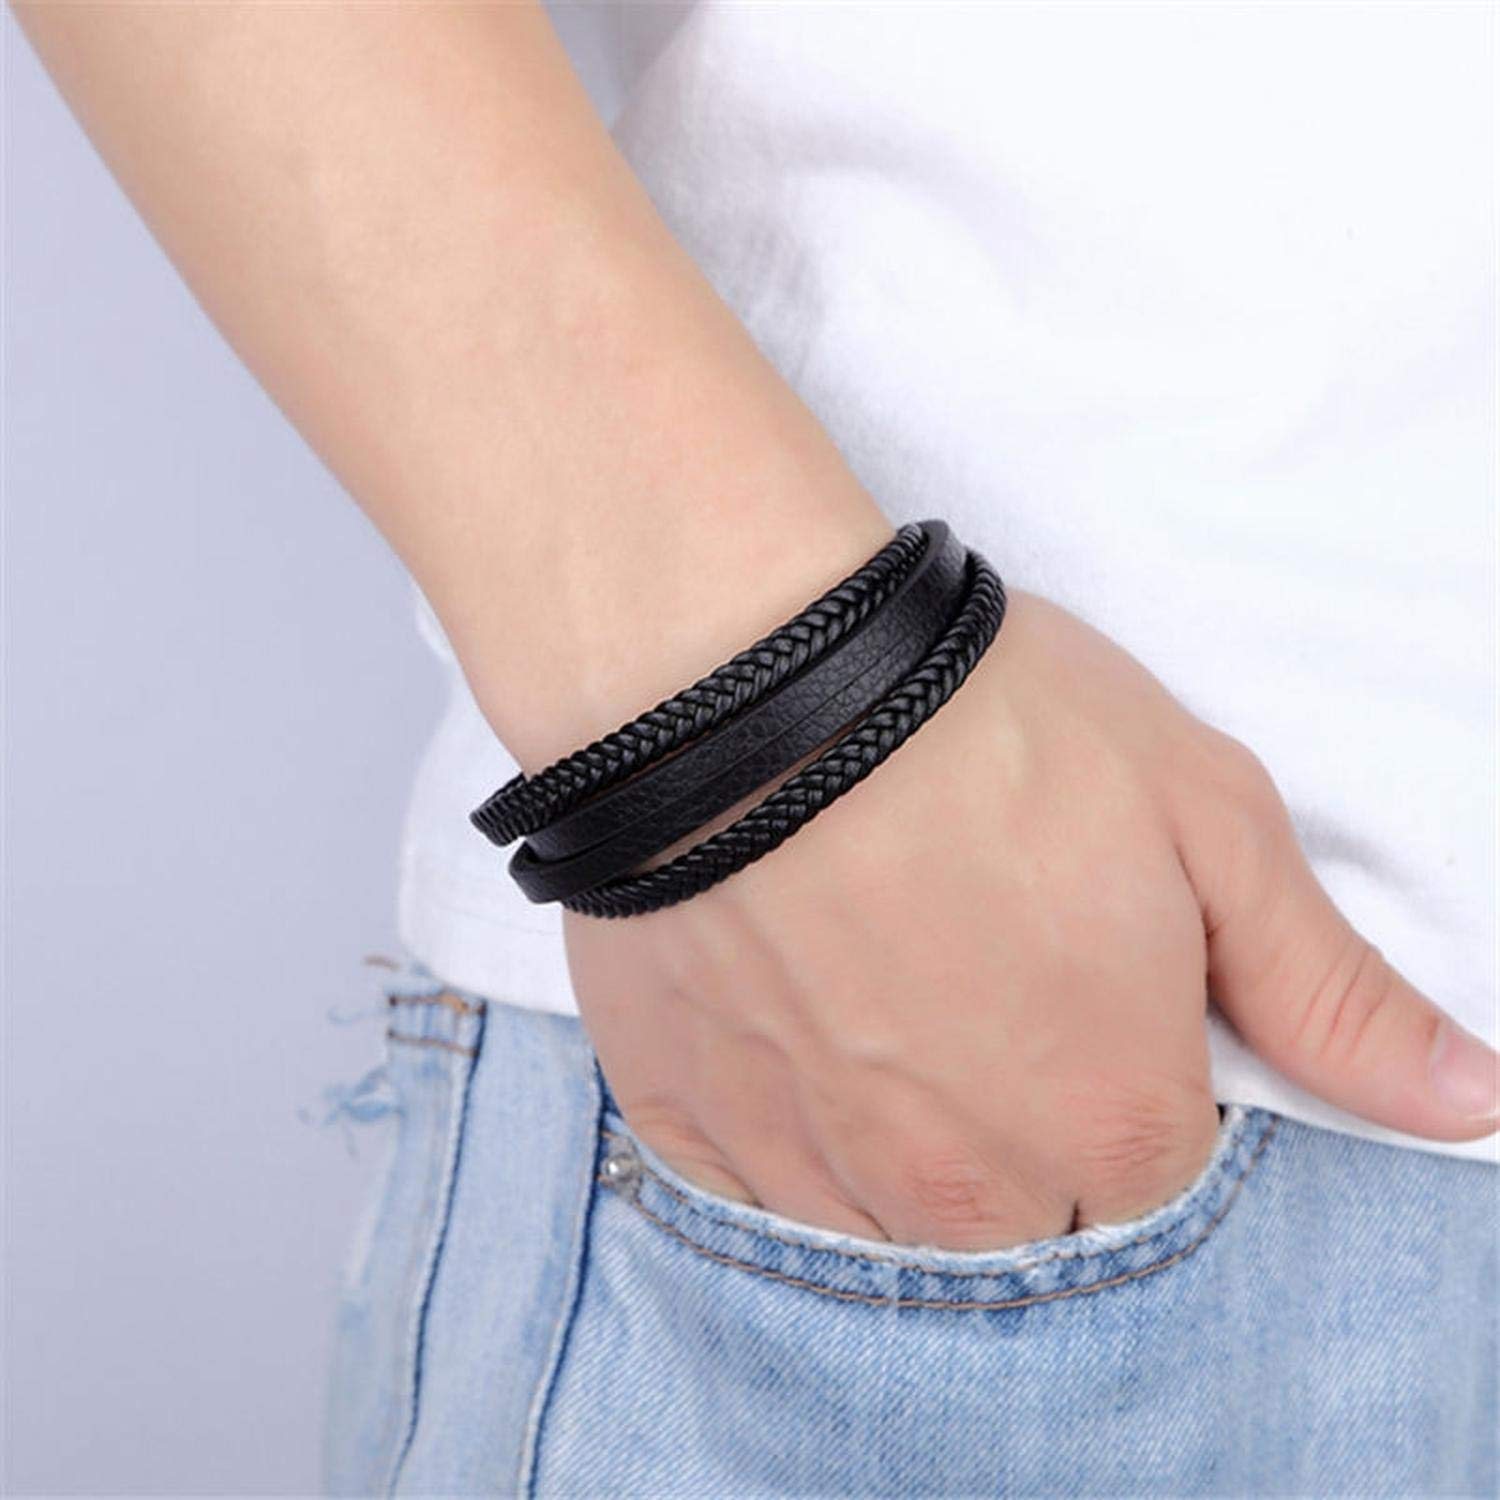 loloday Bracelet Multi-Layers Handmade Braided Genuine Leather/&Bangle Stainless Steel Bangles Gifts